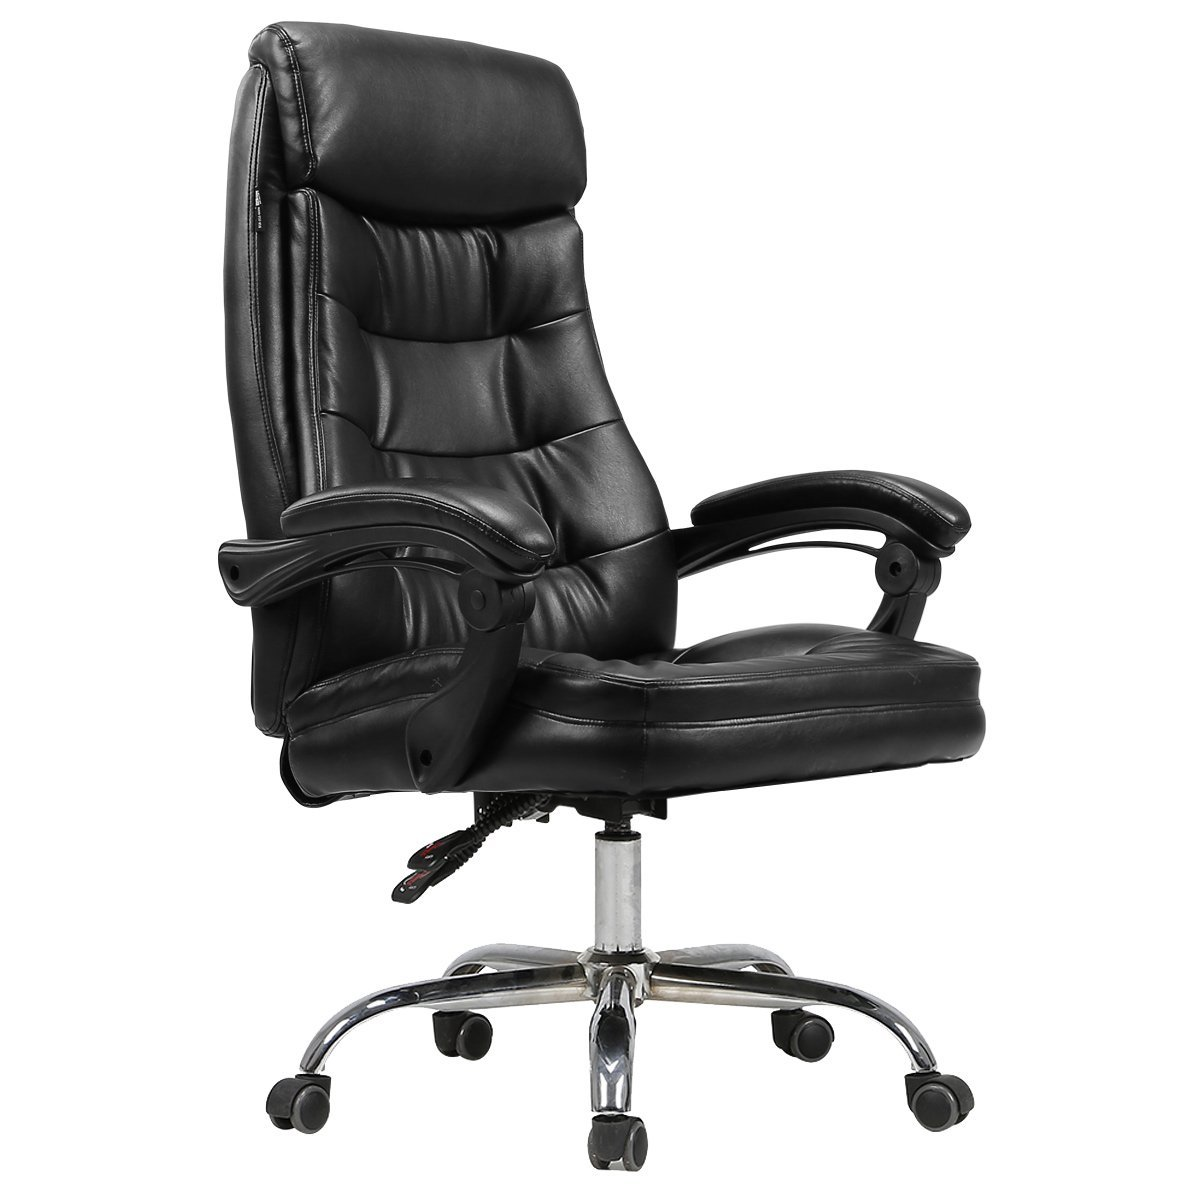 Hbada Ergonomic Office Chair, High Back Recliner, Desk Chair, PU Leather  Managerial